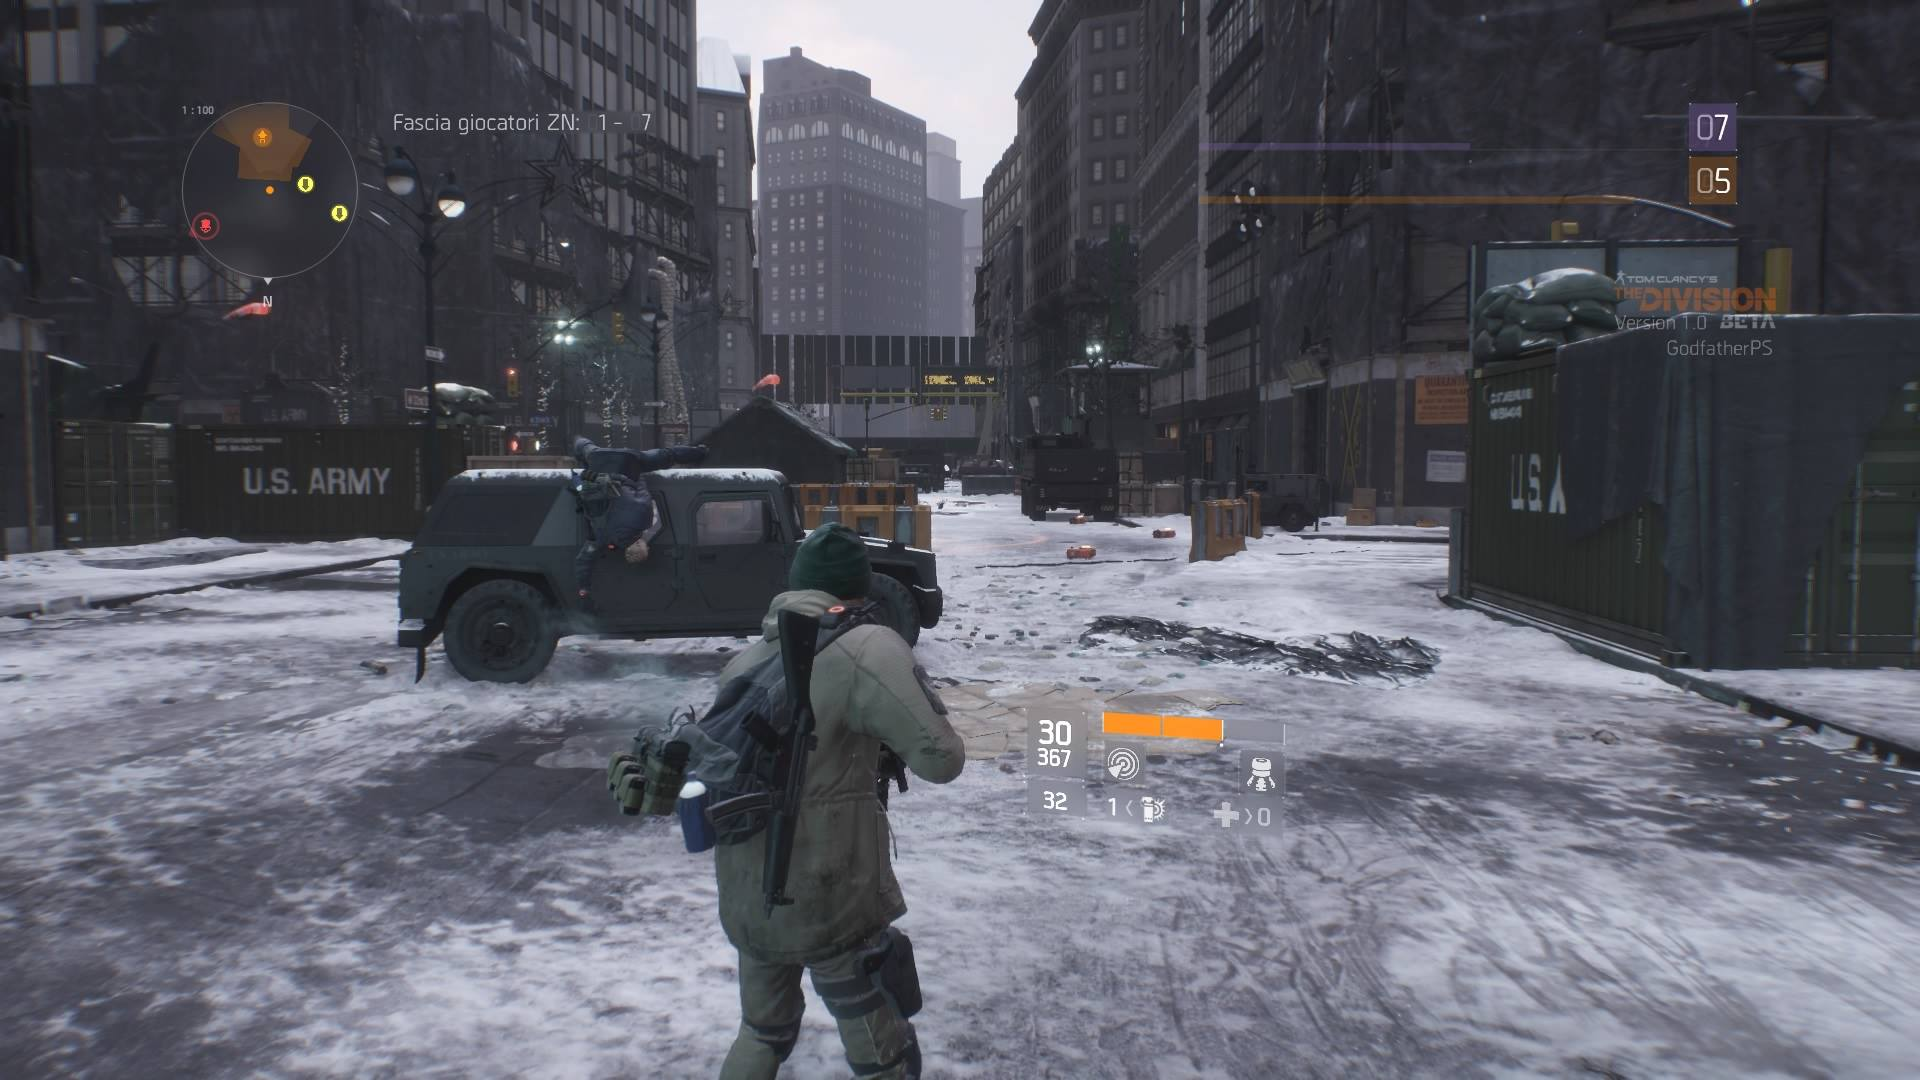 Tom Clancy's The Division PS4 Closed Beta Review